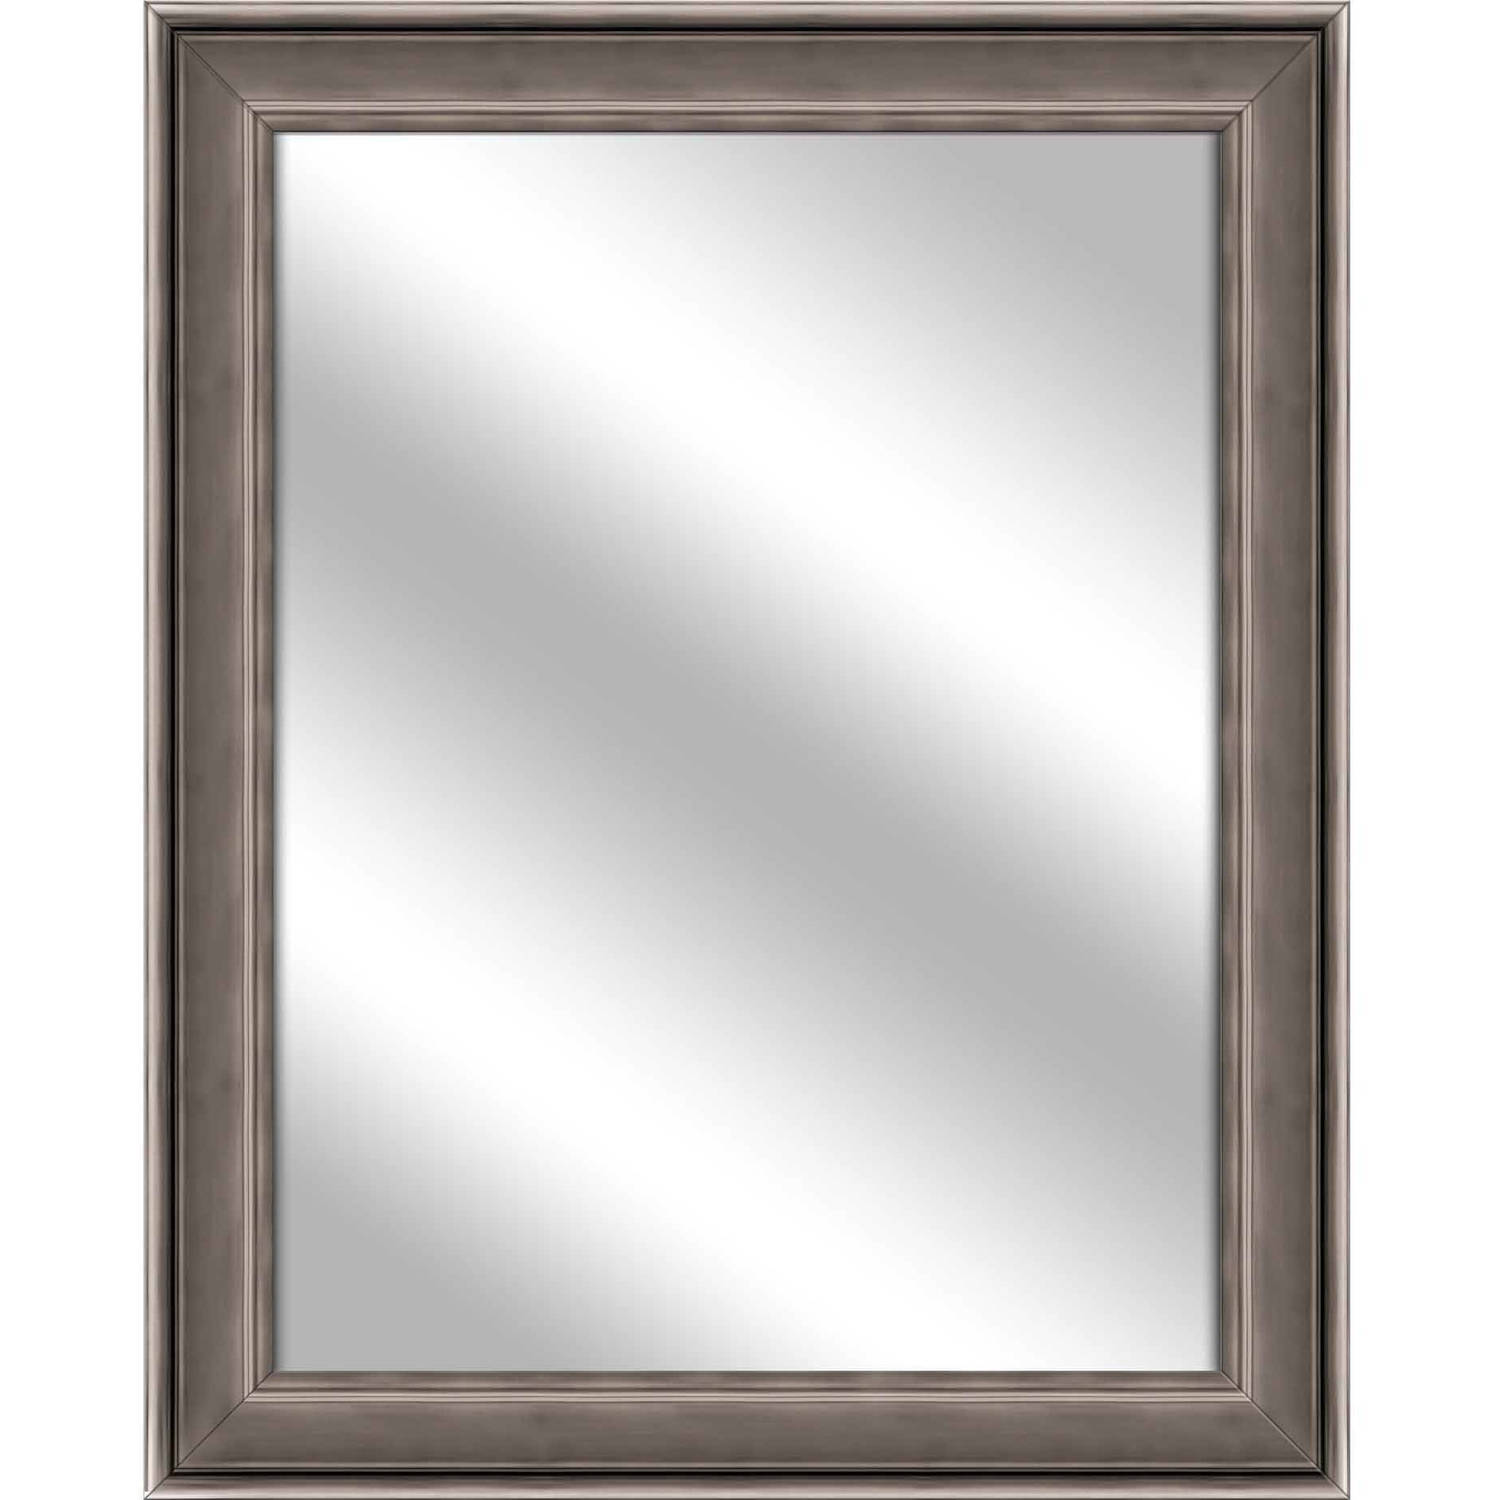 Vanity Mirror, Champagne, 26.75x32.75 by PTM Images